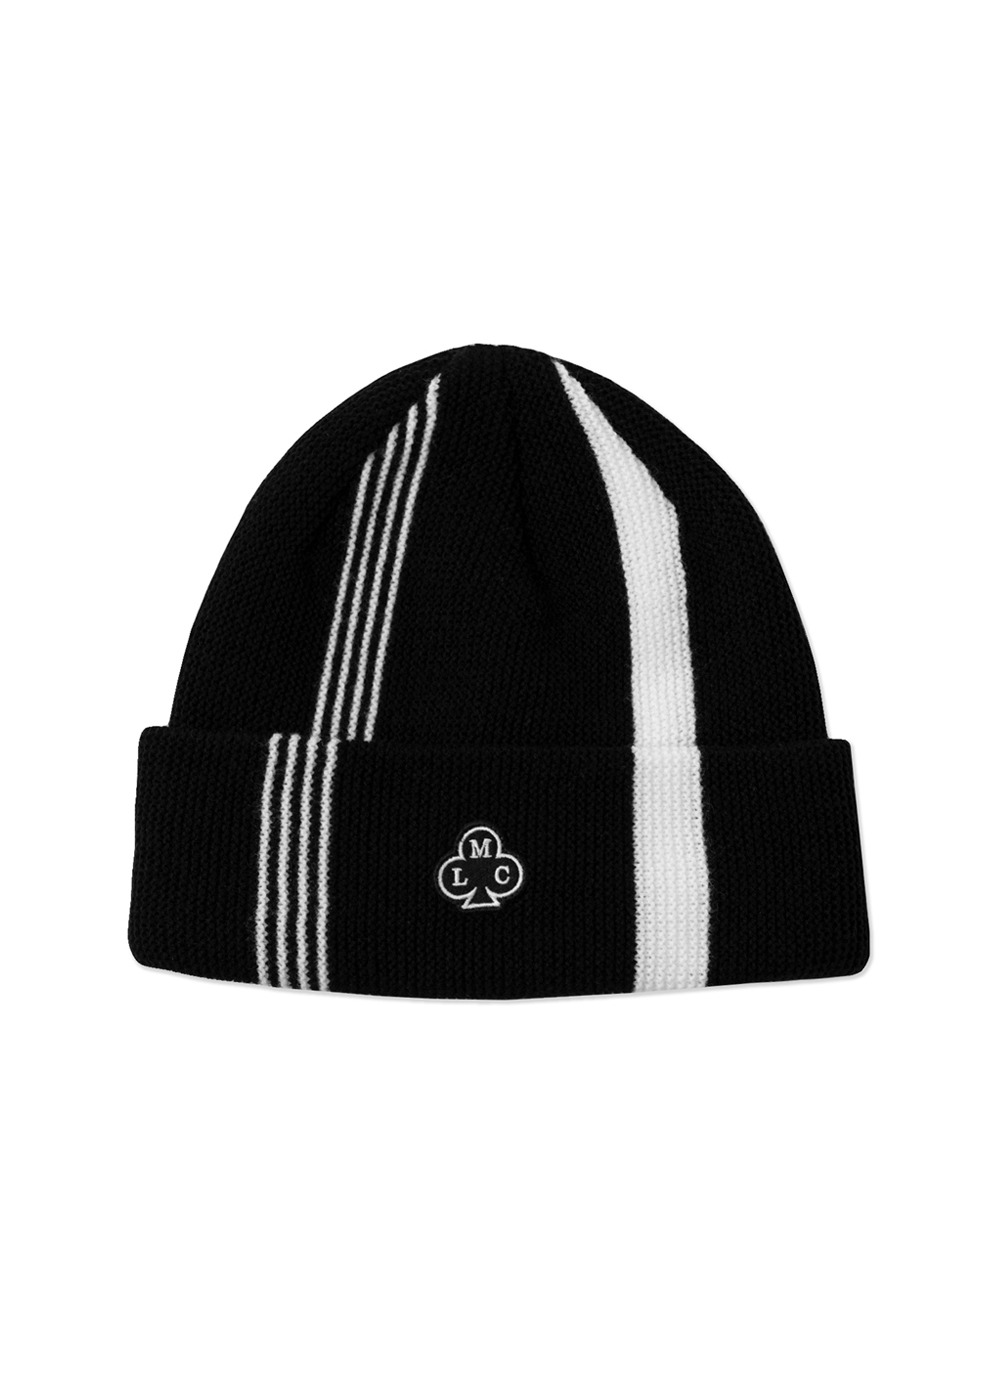 LMC CLUB RACING STRIPES BEANIE black